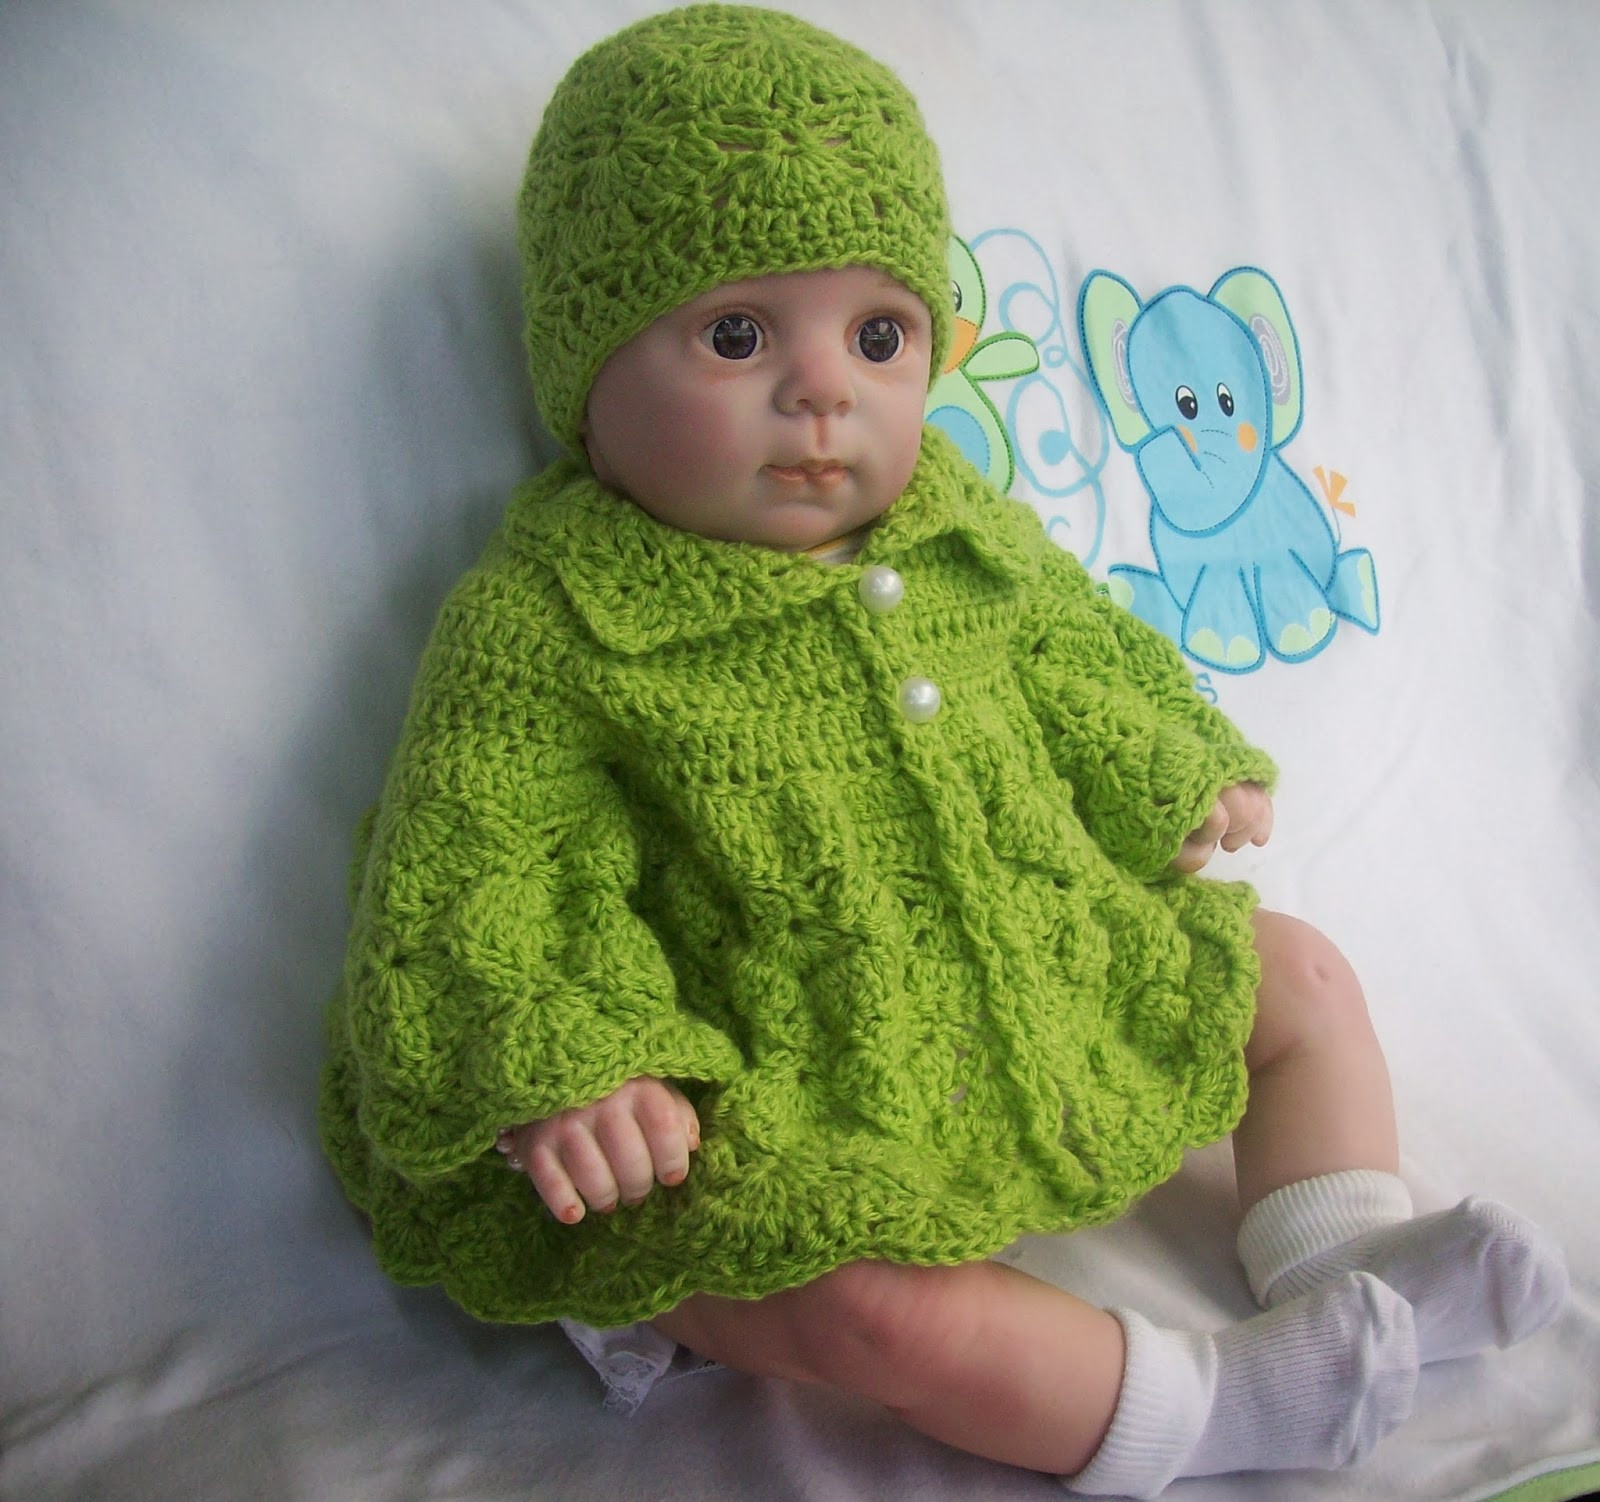 Crochet toddler Sweater Unique Free Crochet Patterns by Cats Rockin Crochet Of Lovely 50 Photos Crochet toddler Sweater